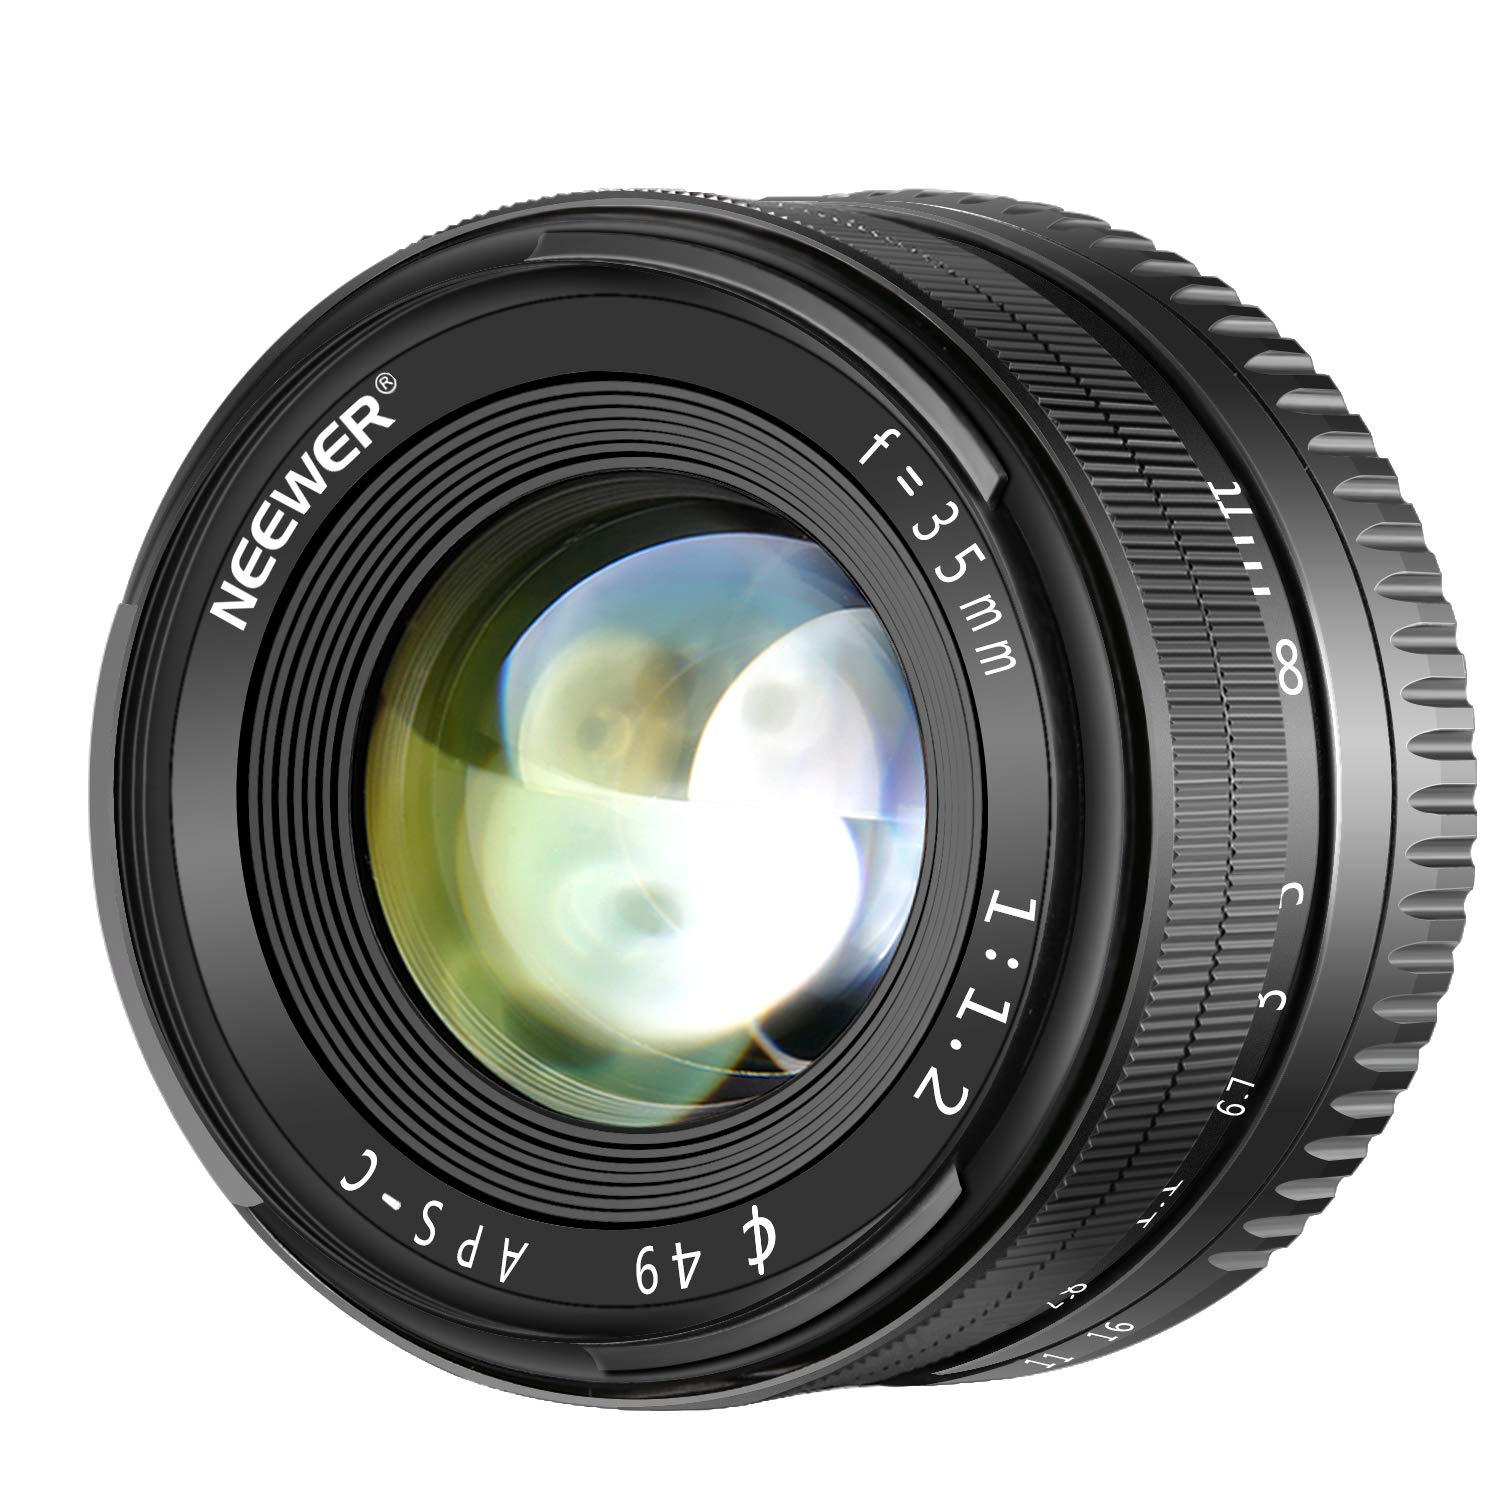 Neewer 35mm F1.2 Large Aperture Prime APS-C Aluminum Lens for Sony E Mount Mirrorless Cameras A7III, A9,NEX 3,3N,5,NEX 5T,NEX 5R,NEX 6,7,A5000,A5100,A6000,A6100,A6300,A6500 by Neewer